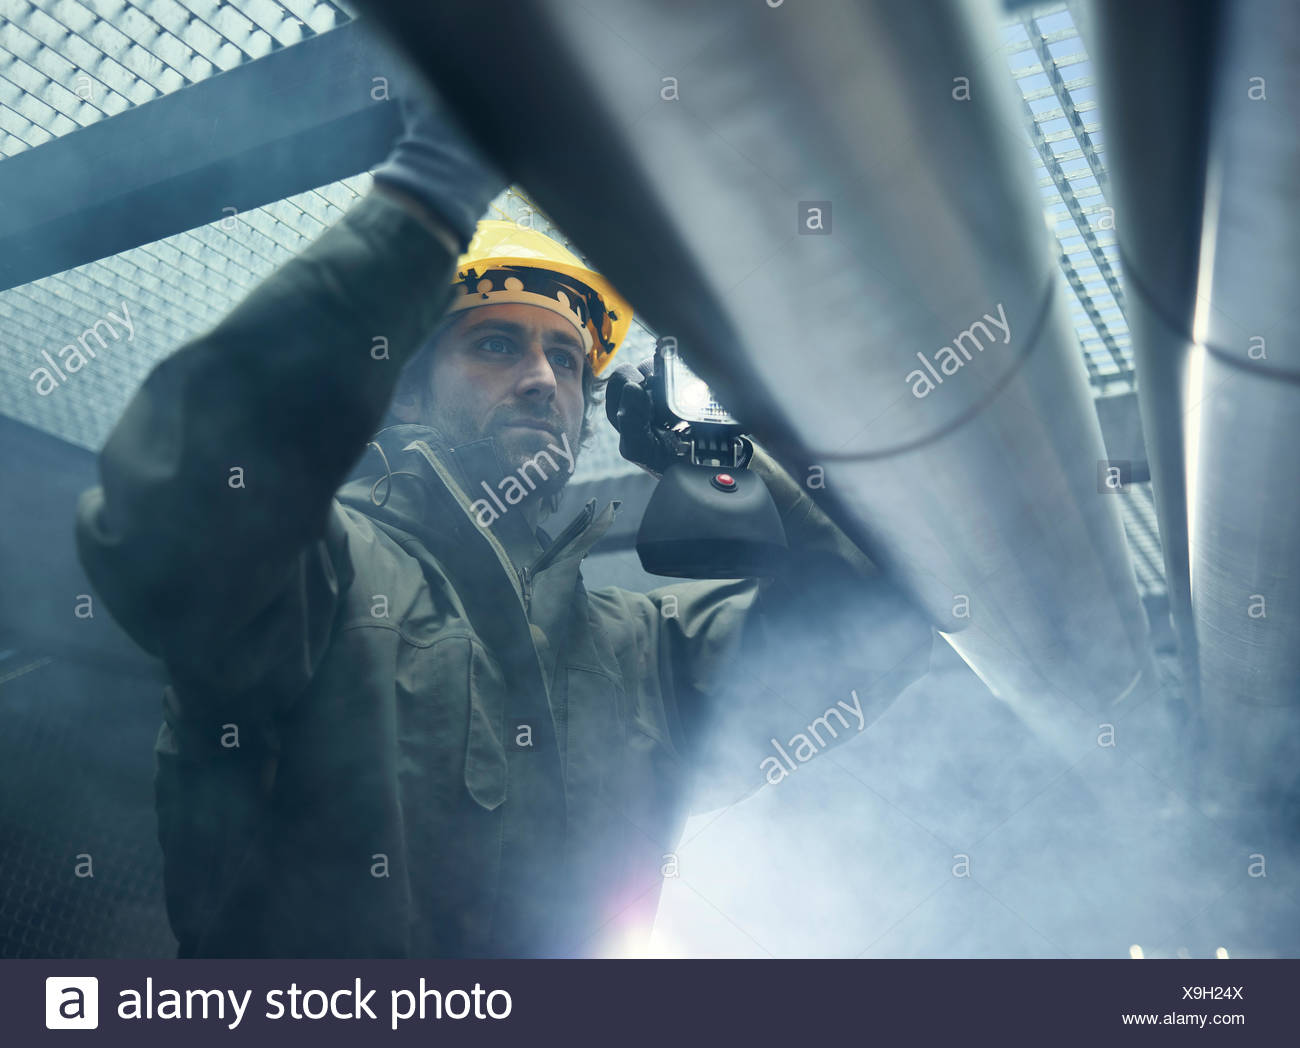 Mechanic with flashlight checking a pipeline, Austria - Stock Image